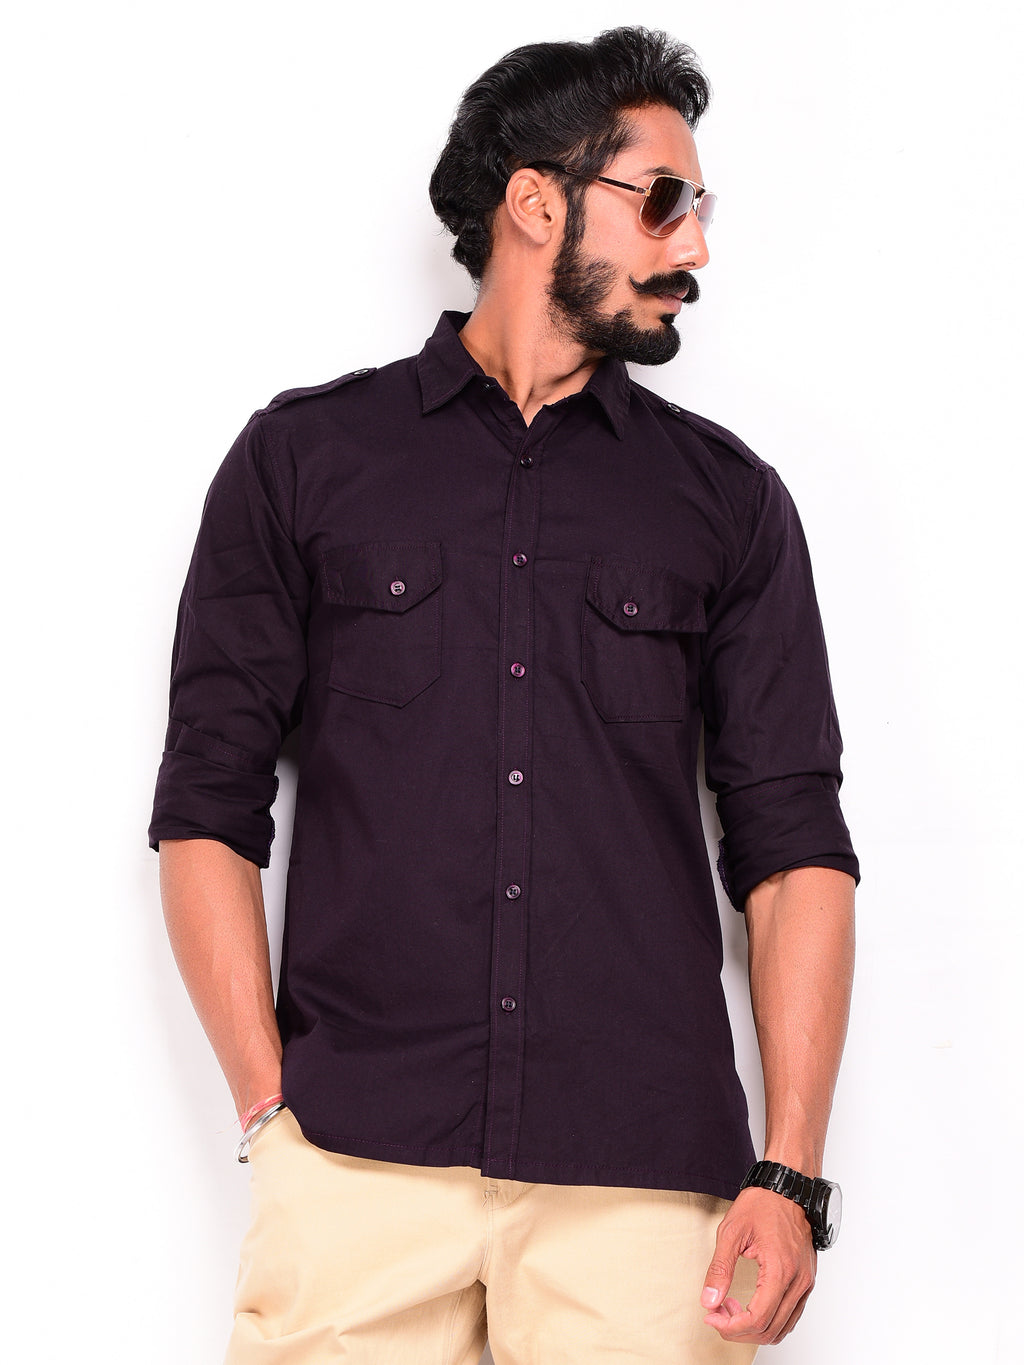 Raisin Purple Hunting Shirt